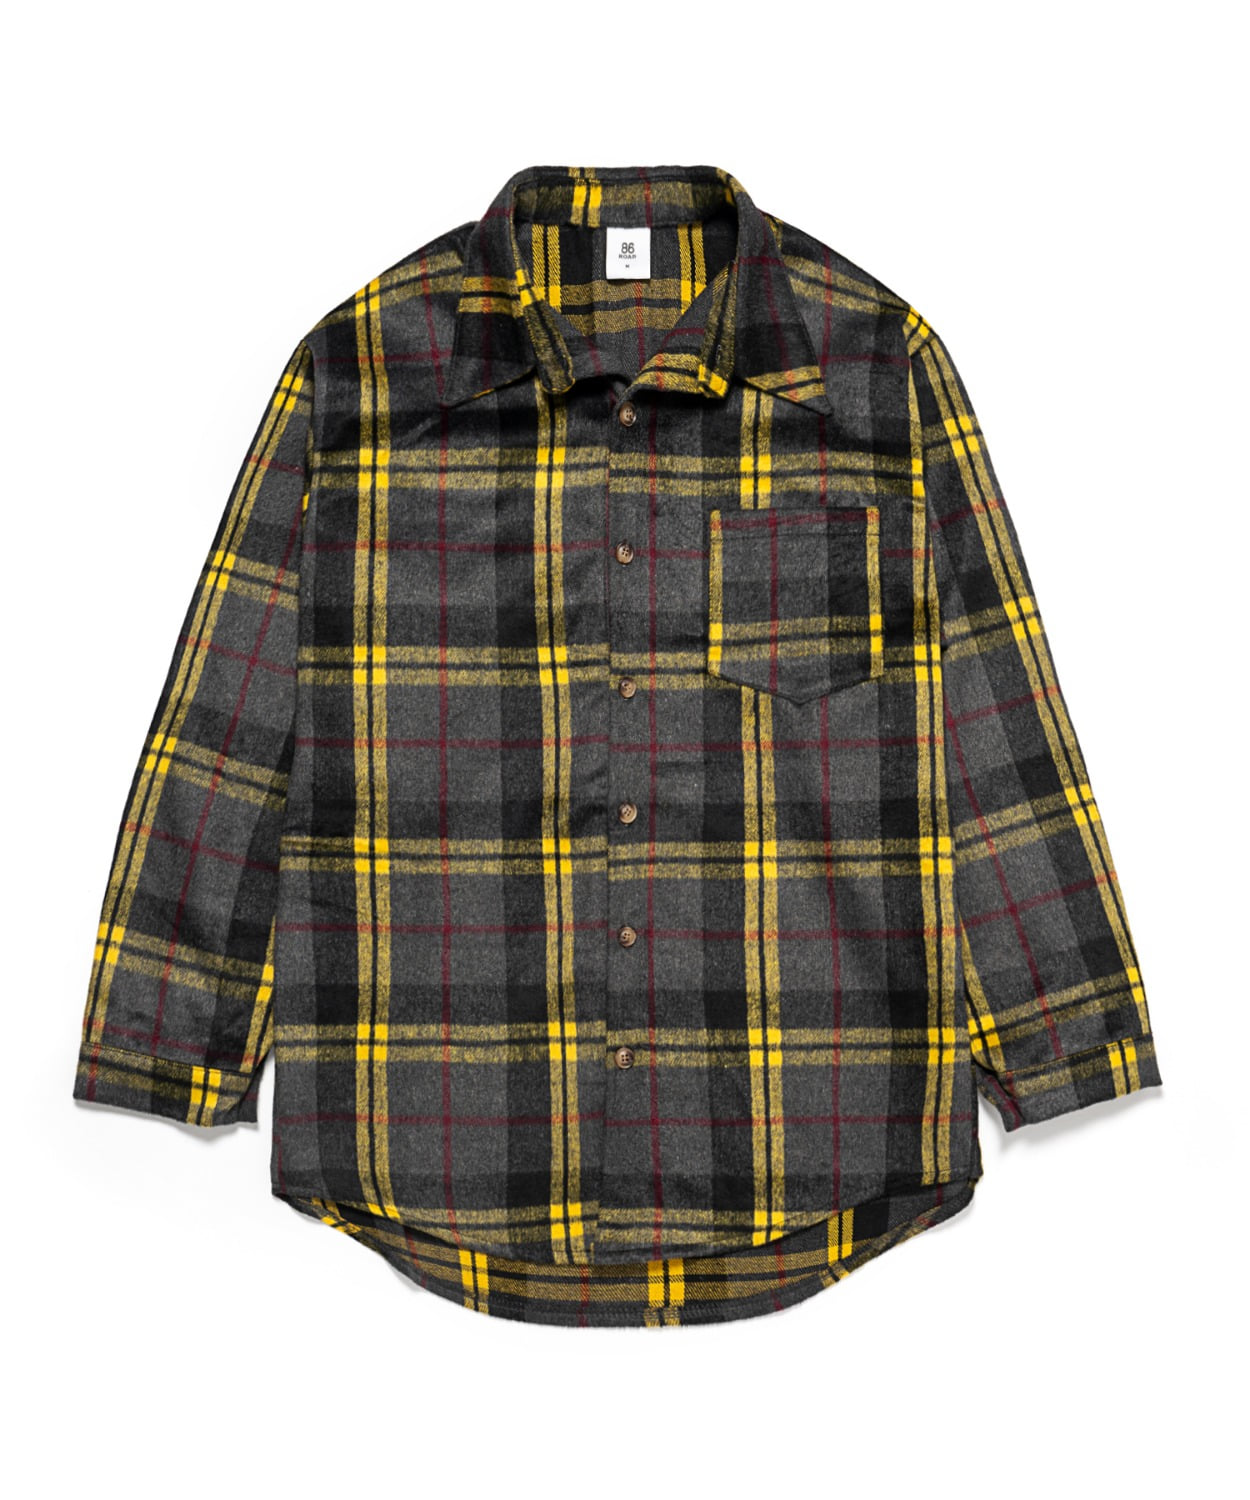 Napping Wool Check Shirts - Yellow(40%SALE)